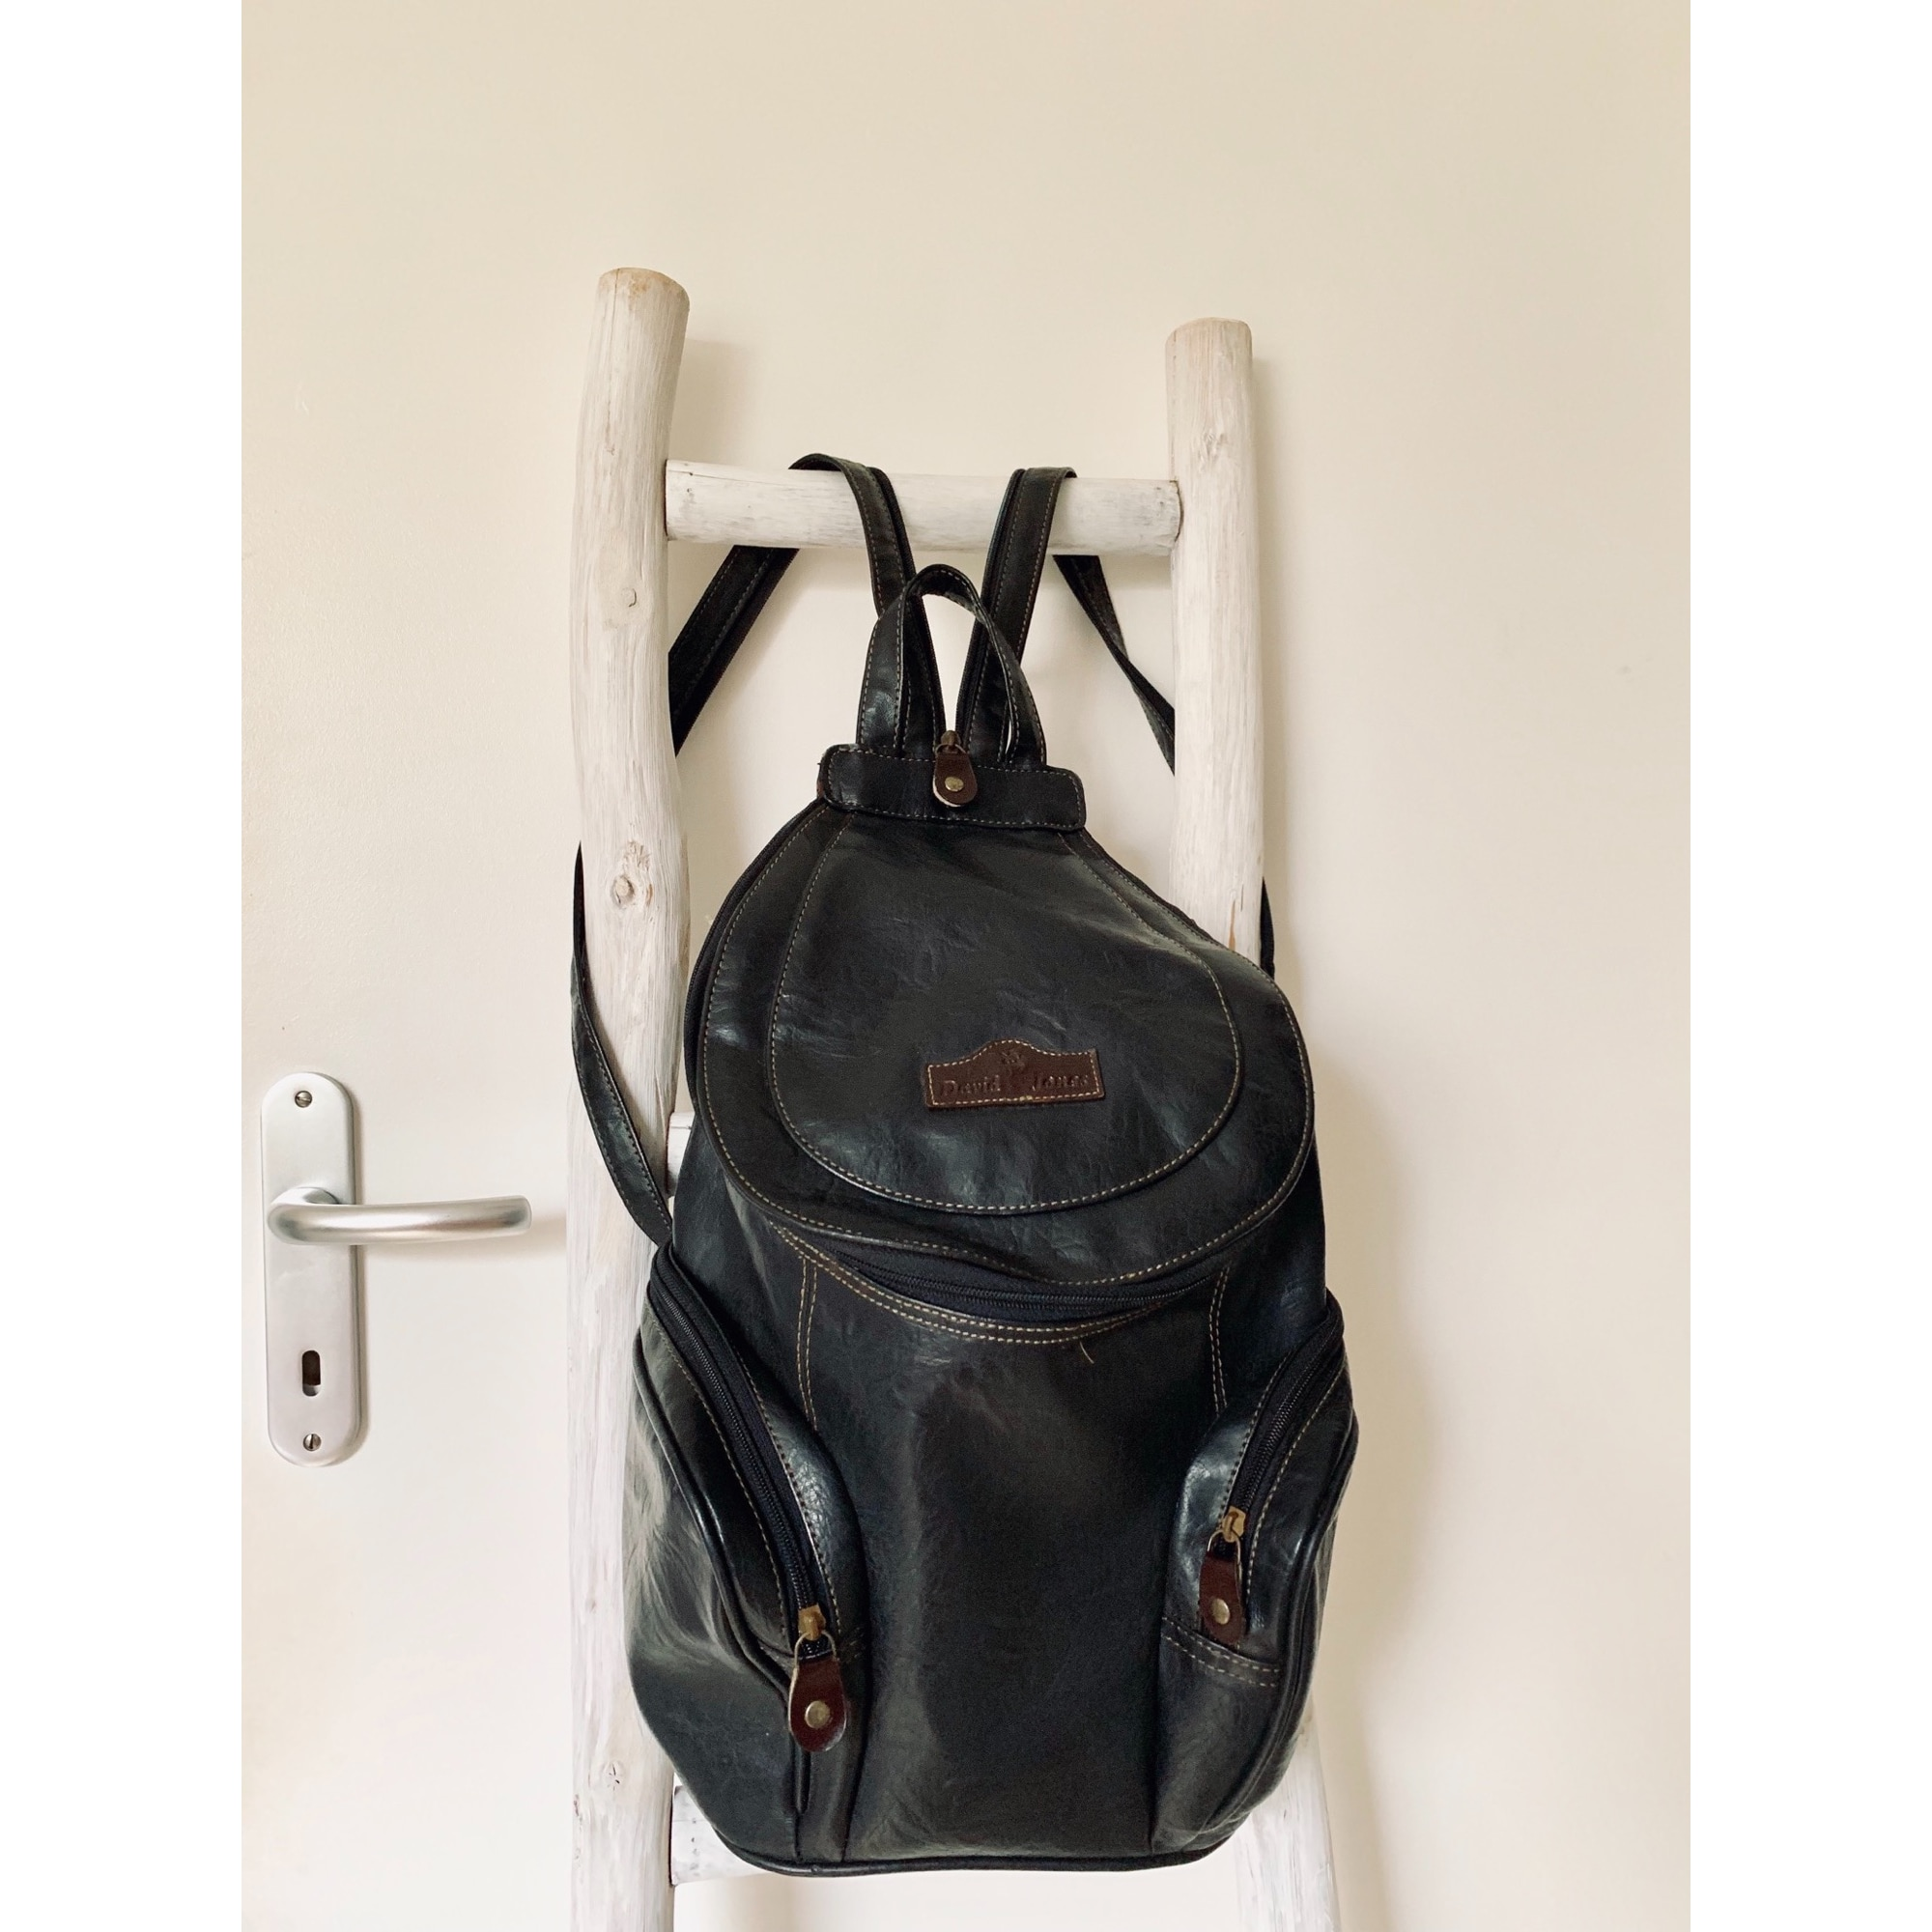 Backpack MARQUE INCONNUE Black